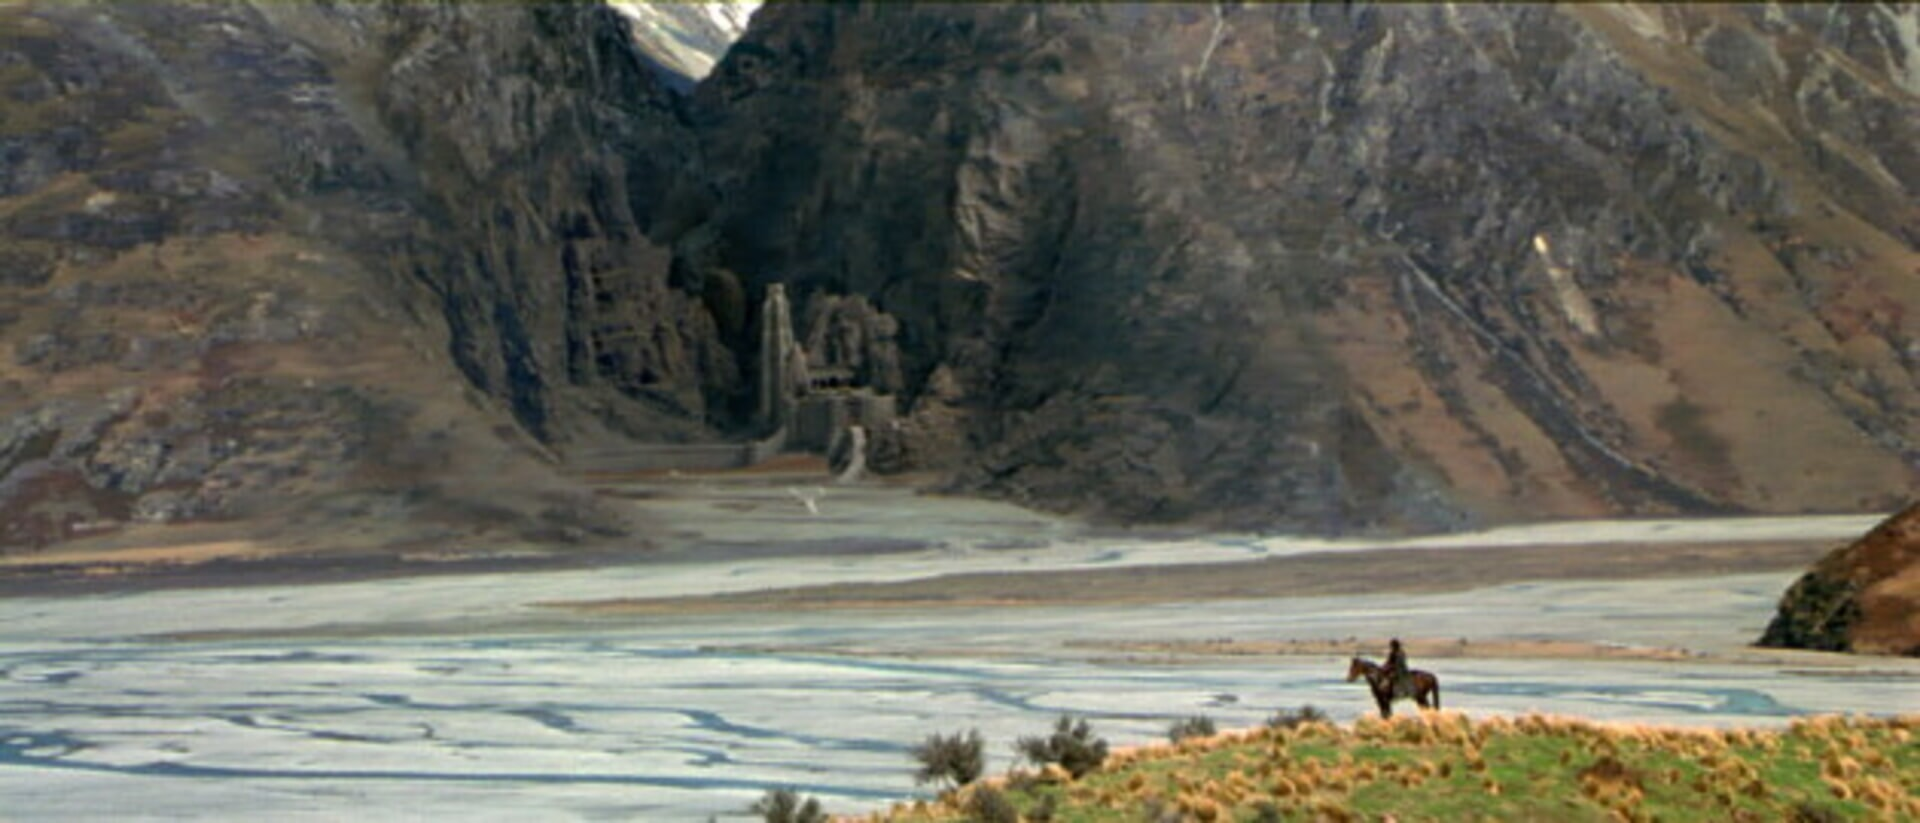 The Lord of the Rings: The Two Towers - Image 18